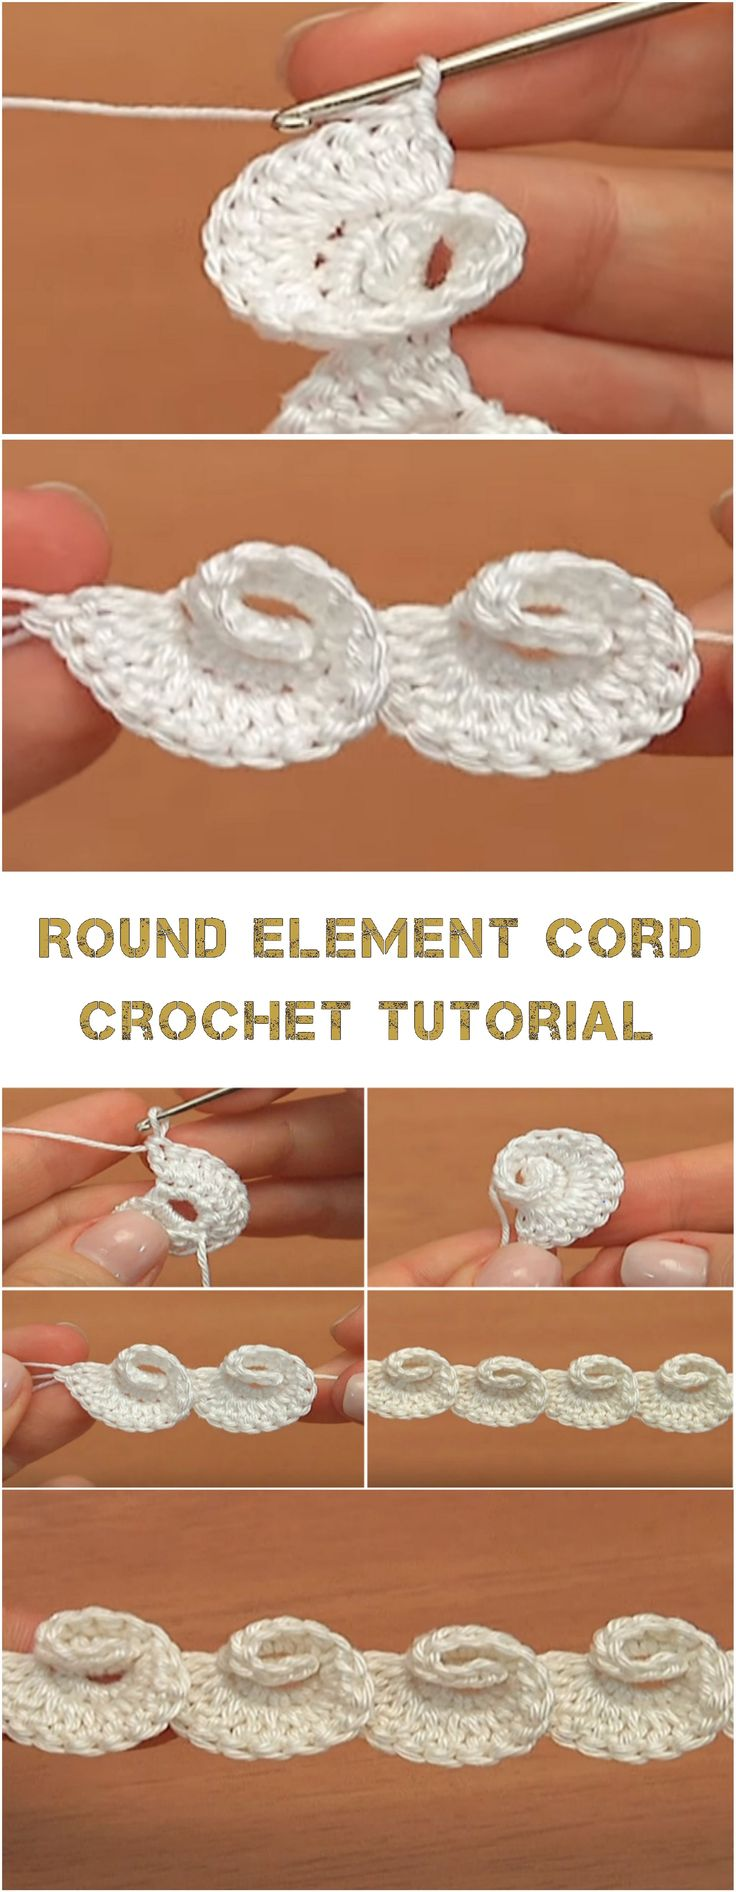 Round Element Cord Crochet Tutorial